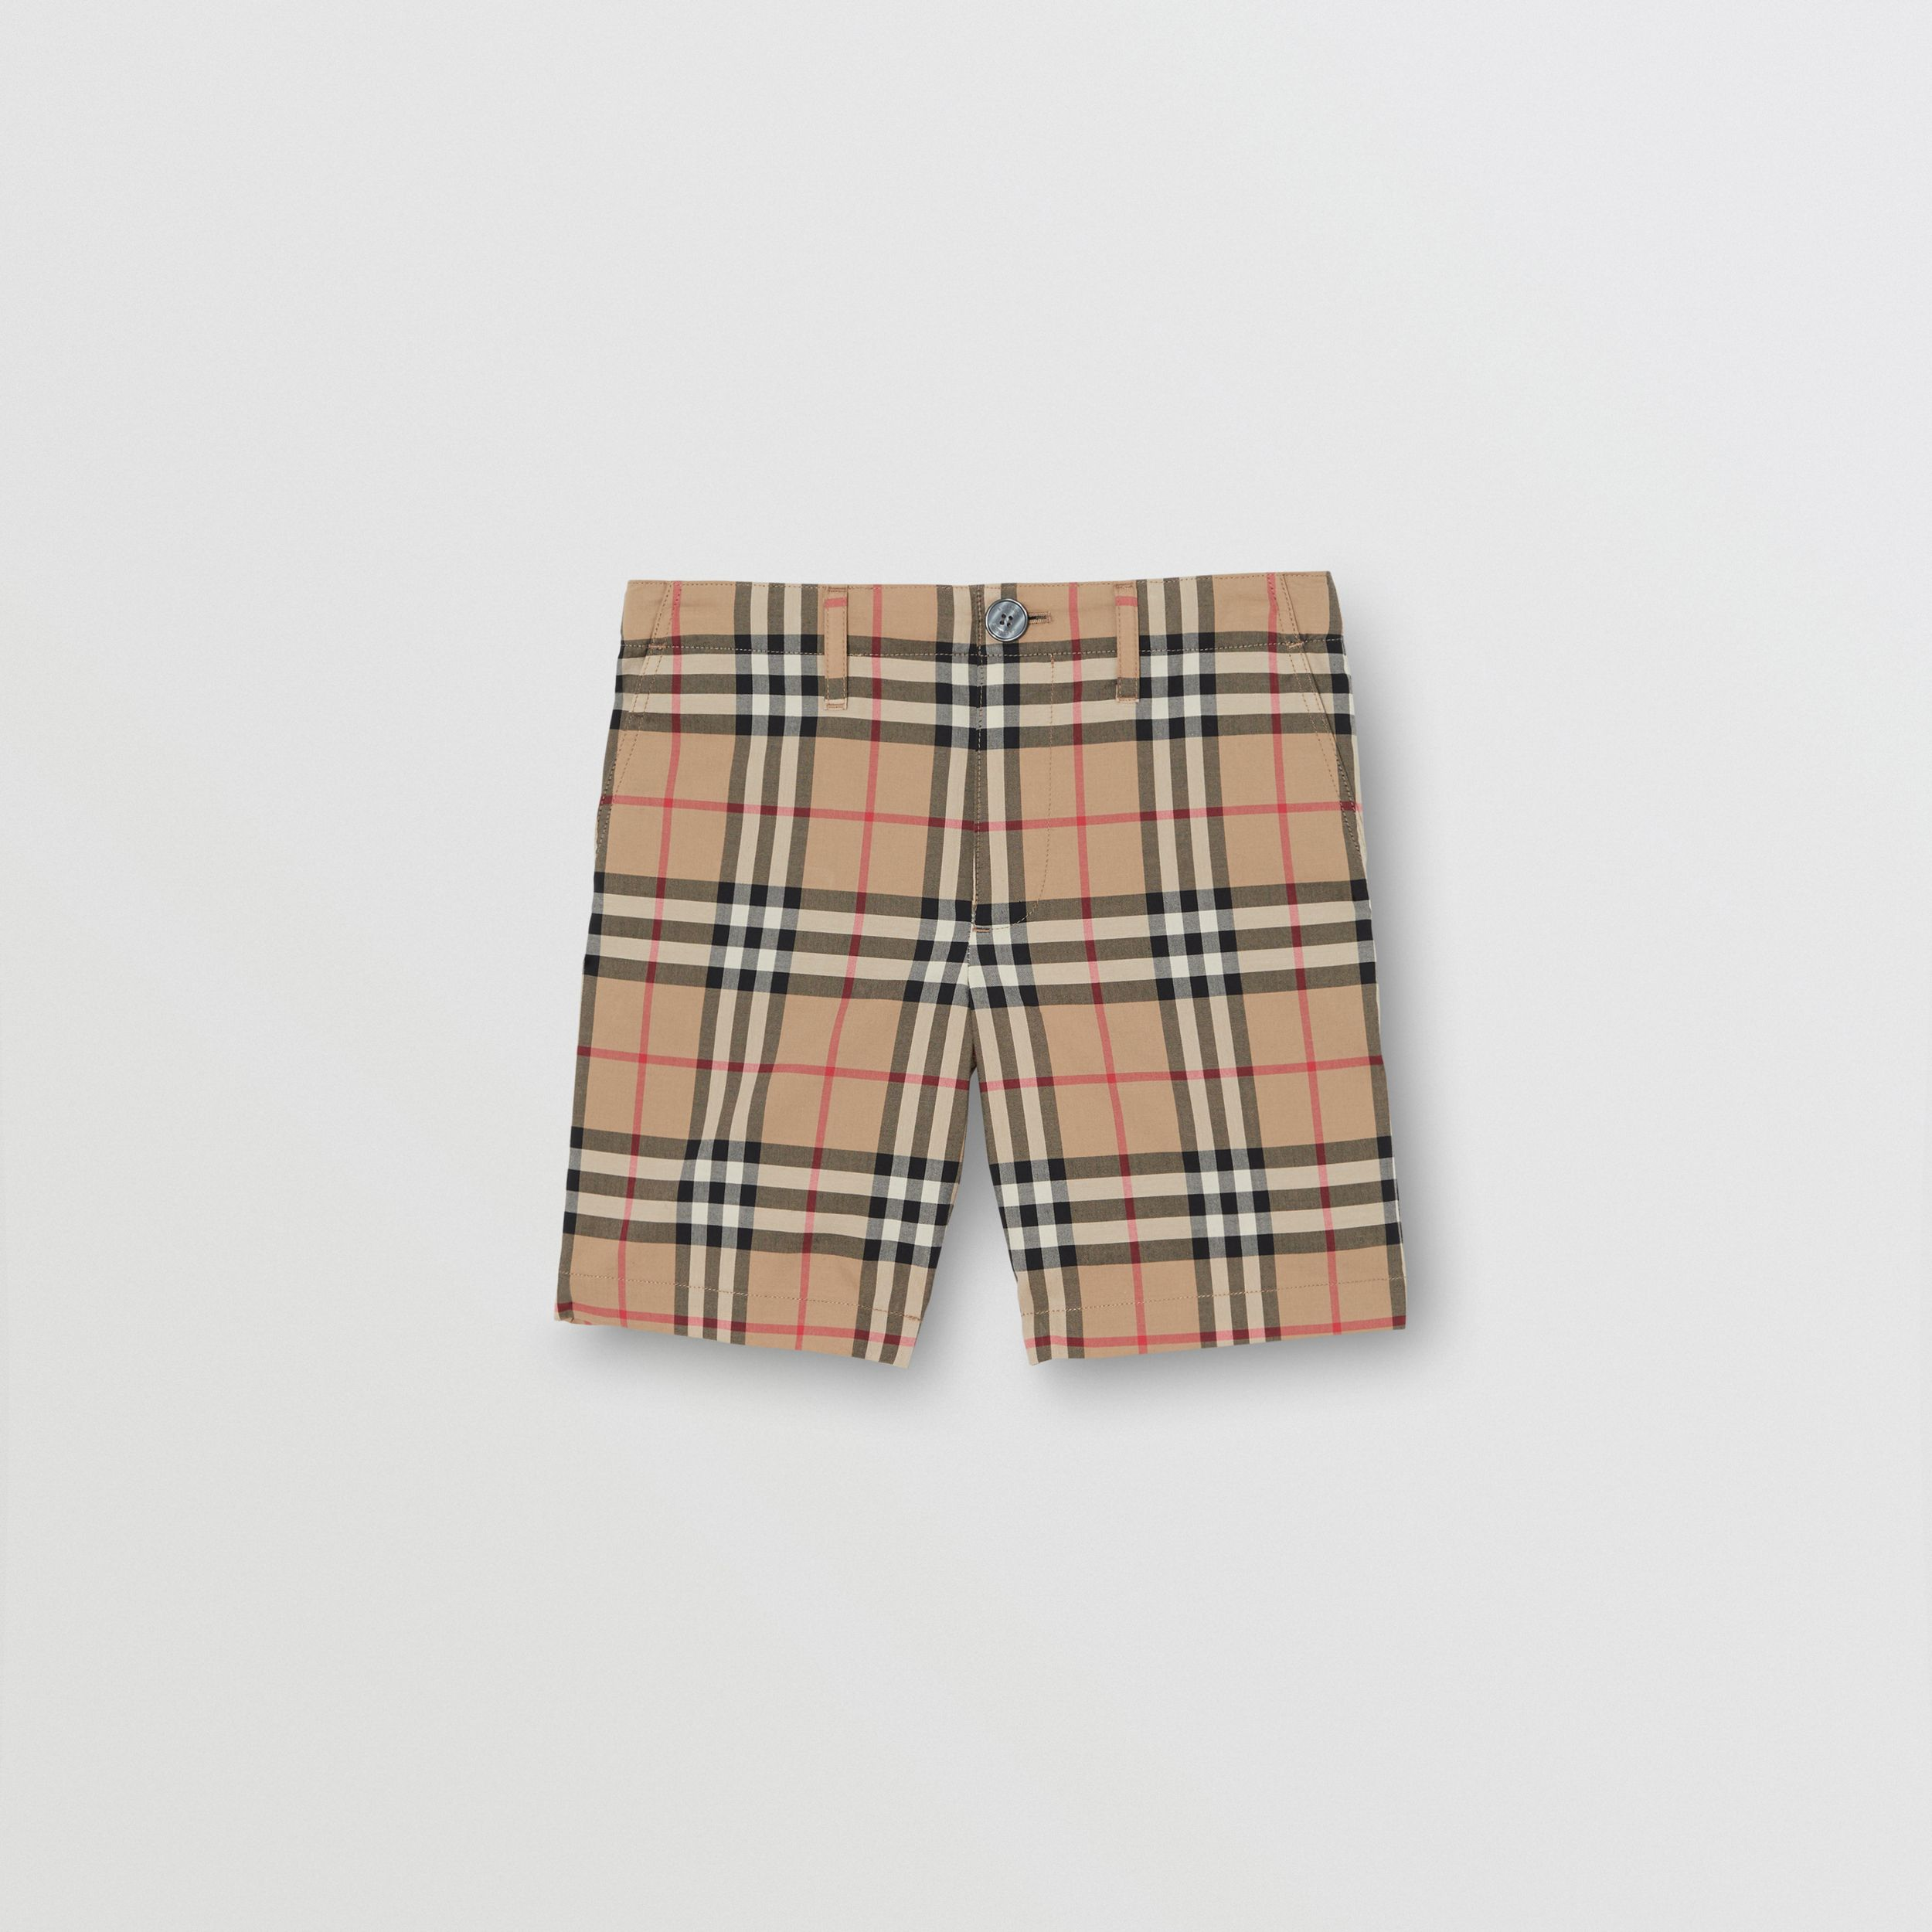 Vintage Check Cotton Tailored Shorts in Archive Beige | Burberry Canada - 1